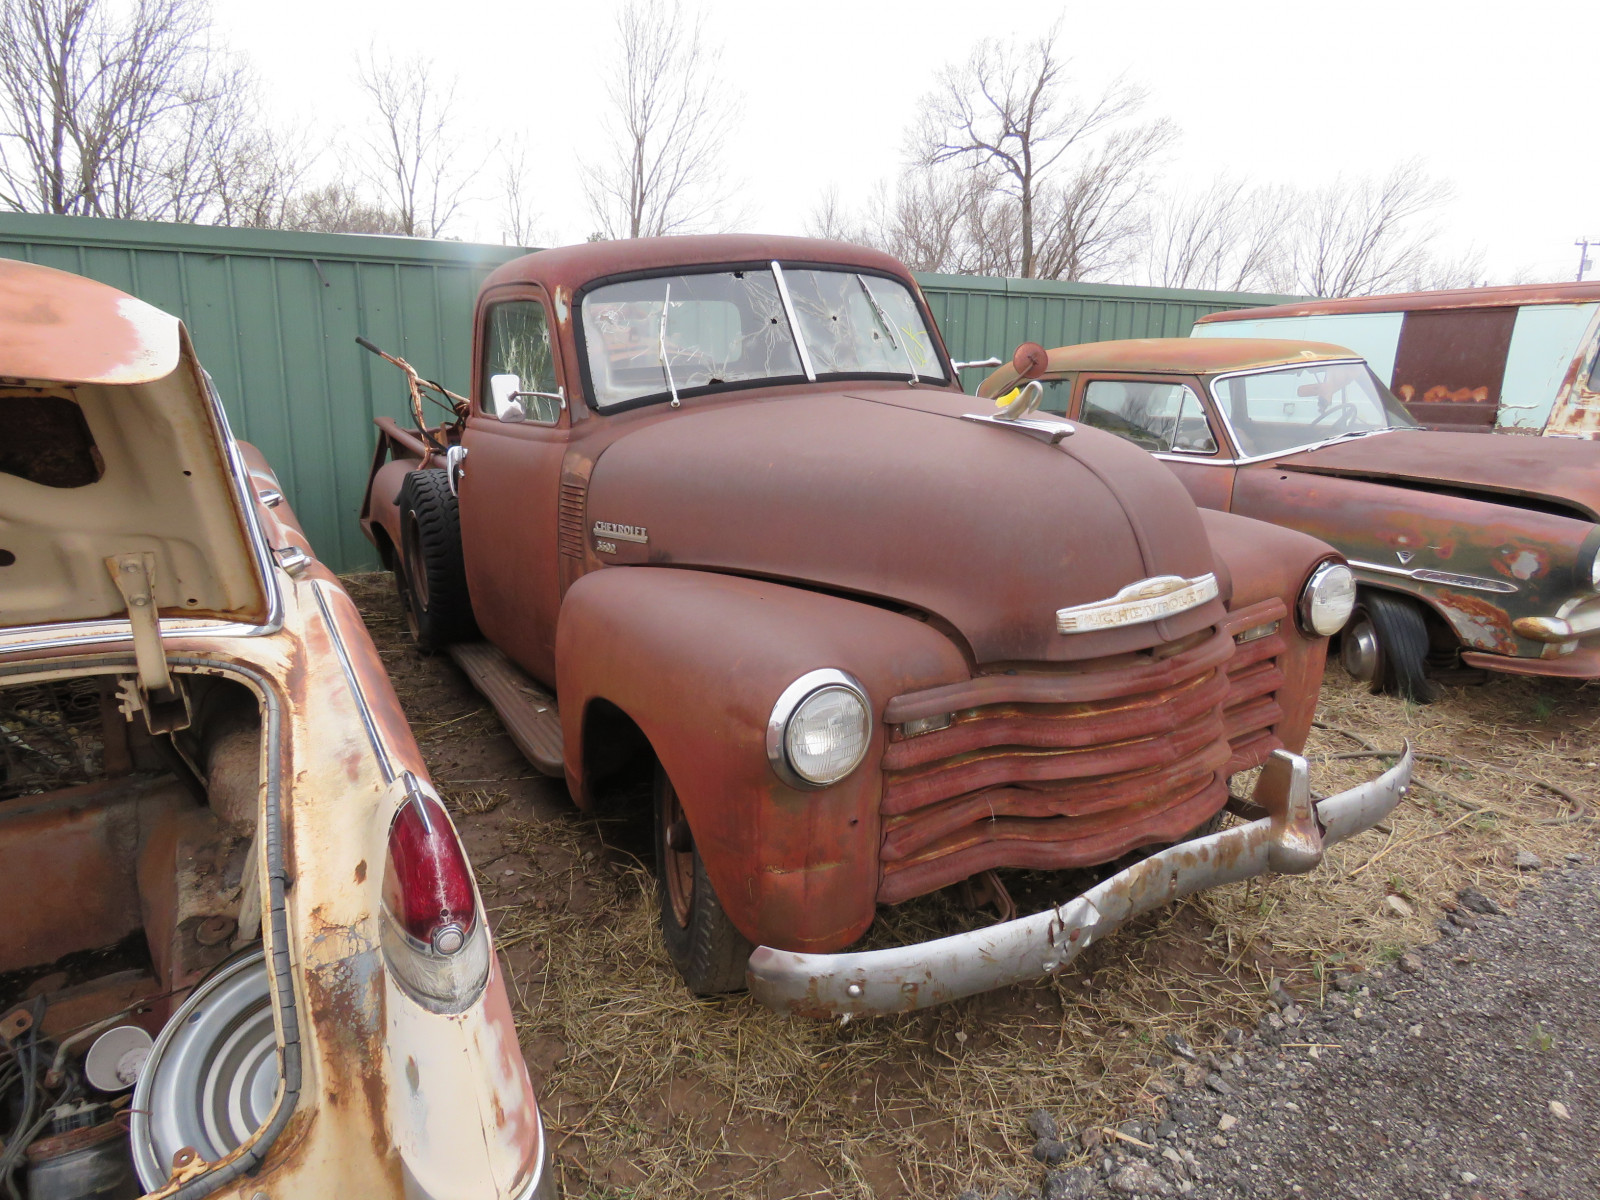 1949 Chevrolet 3600 Series Pickup 5GRA2194 - Image 2